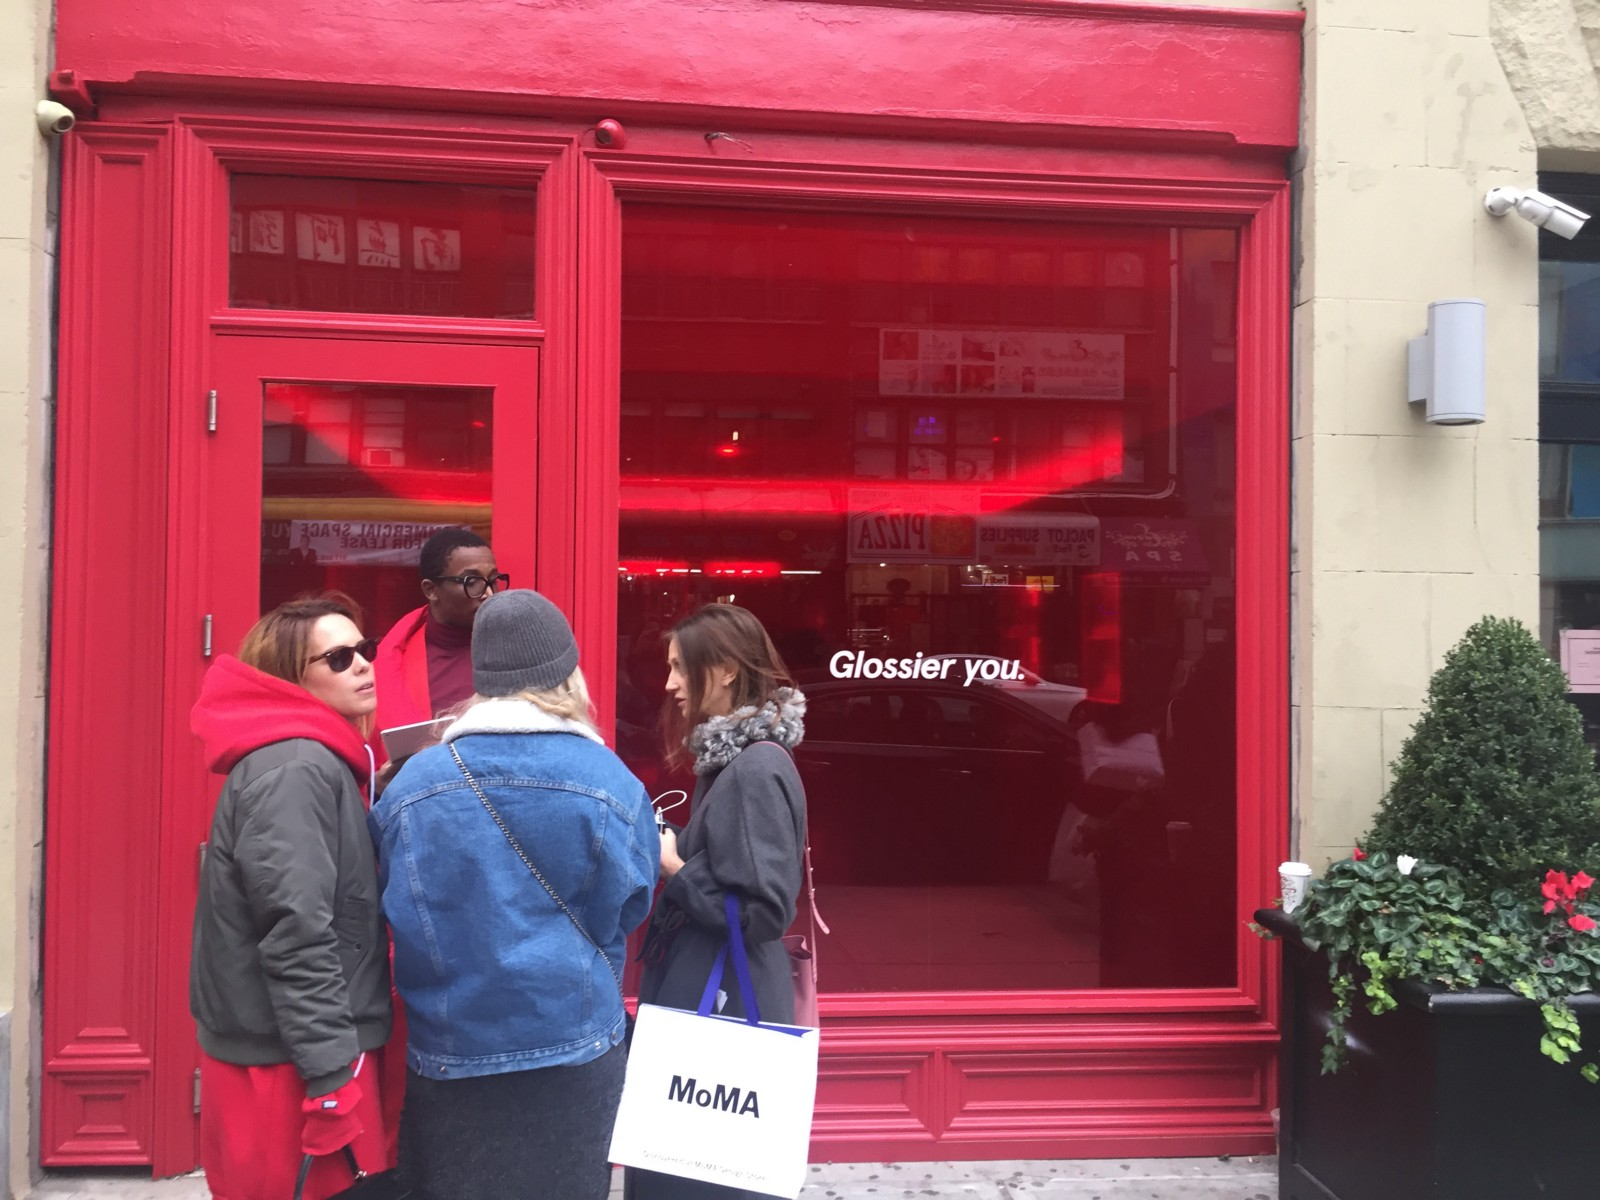 We Went To The Glossier You Fragrance Pop Up And It Was Just Okay